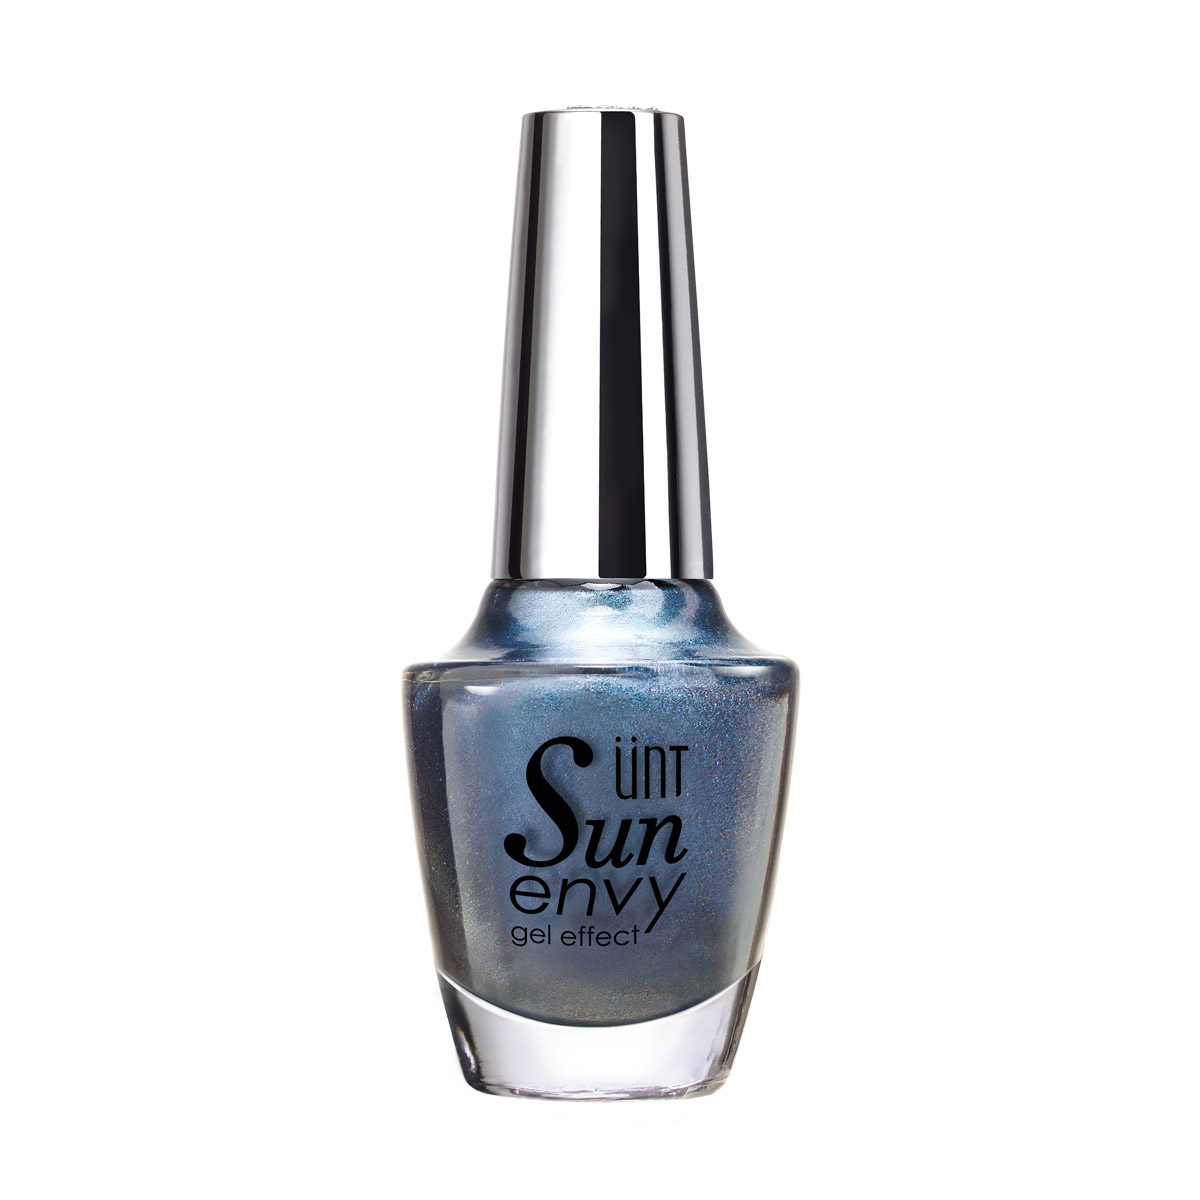 SUN ENVY GEL EFFECT - CRYSTALLIZE THE SUN